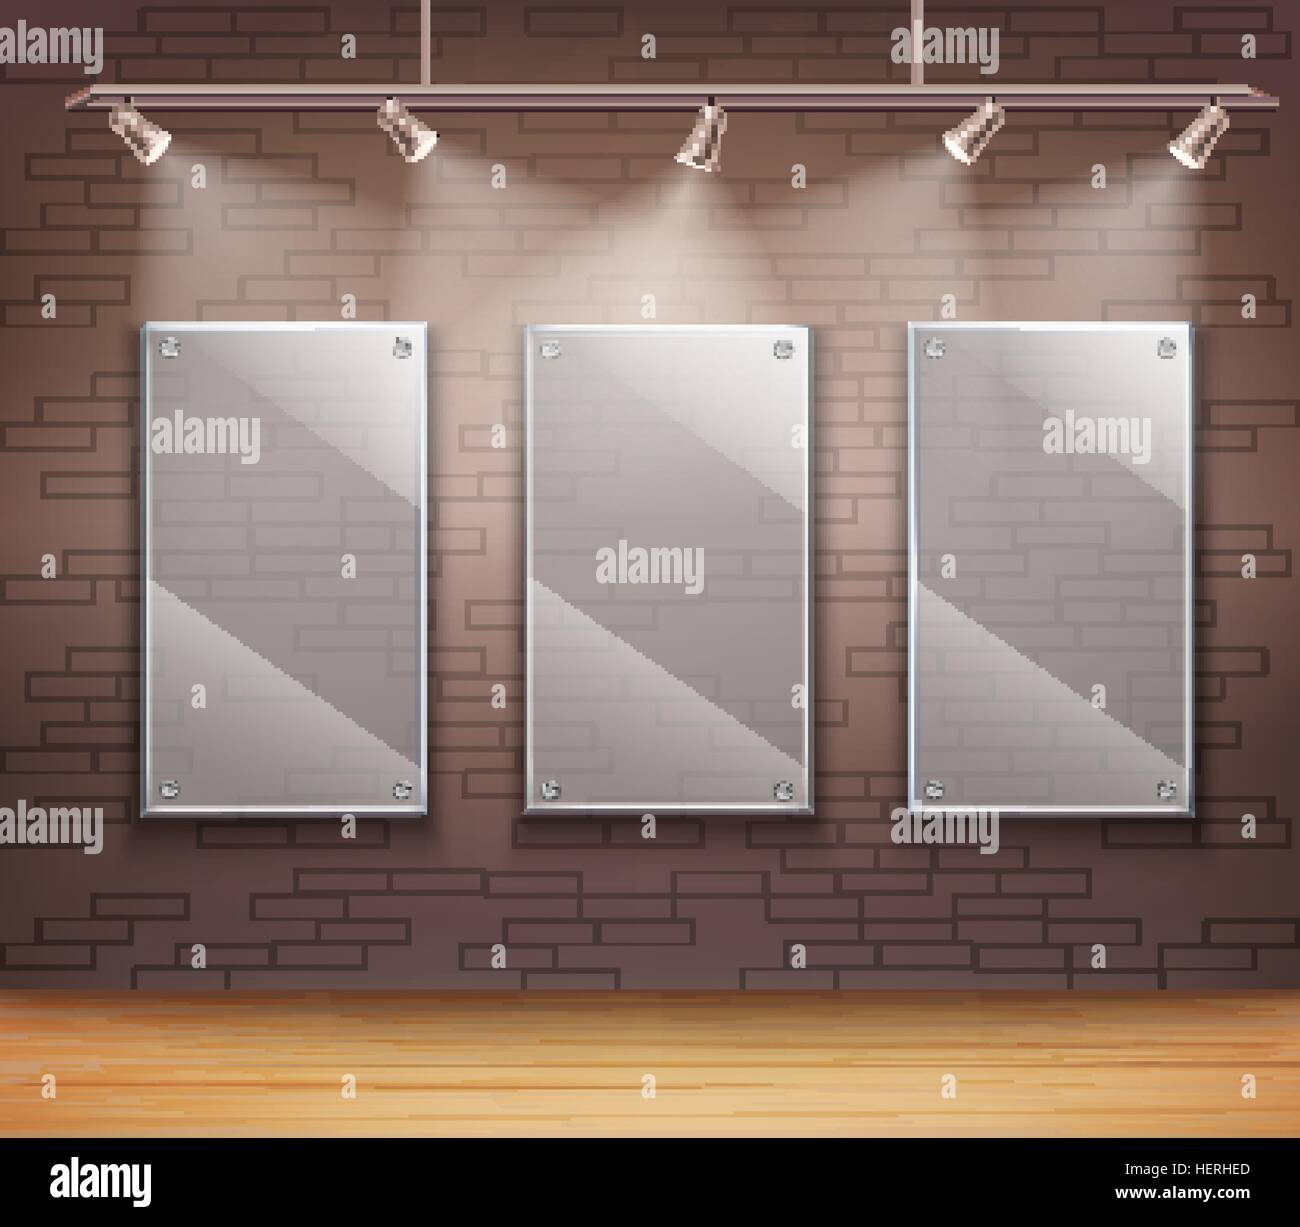 Glass Gallery Frames Gallery Of 3 Transparent Glass Frames On Wall